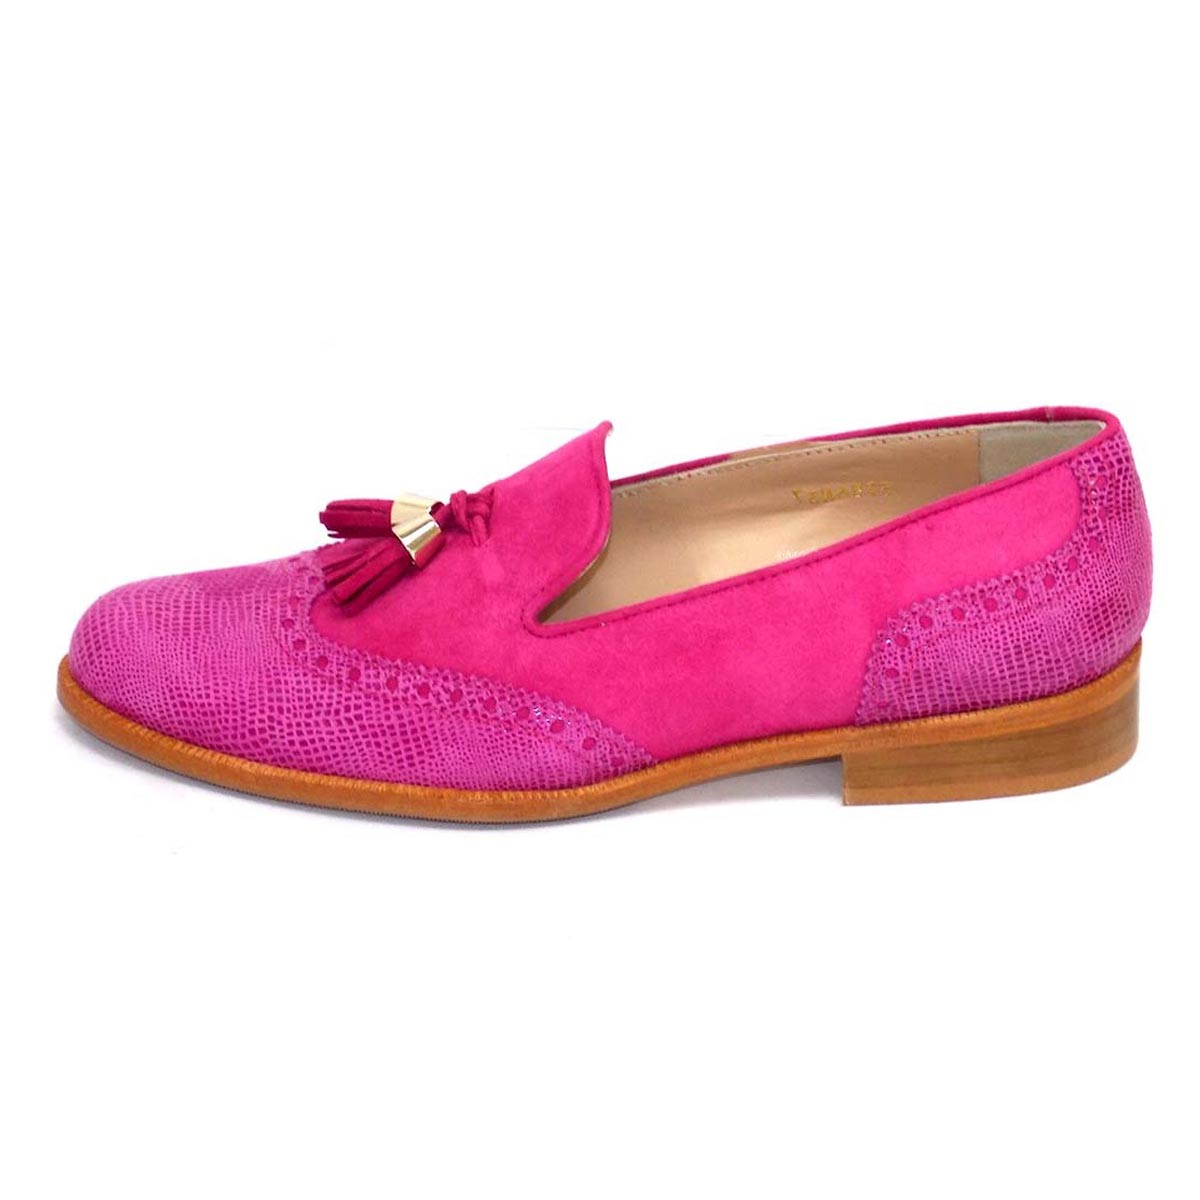 Lucia Pink - HB Pink Suede Brogue